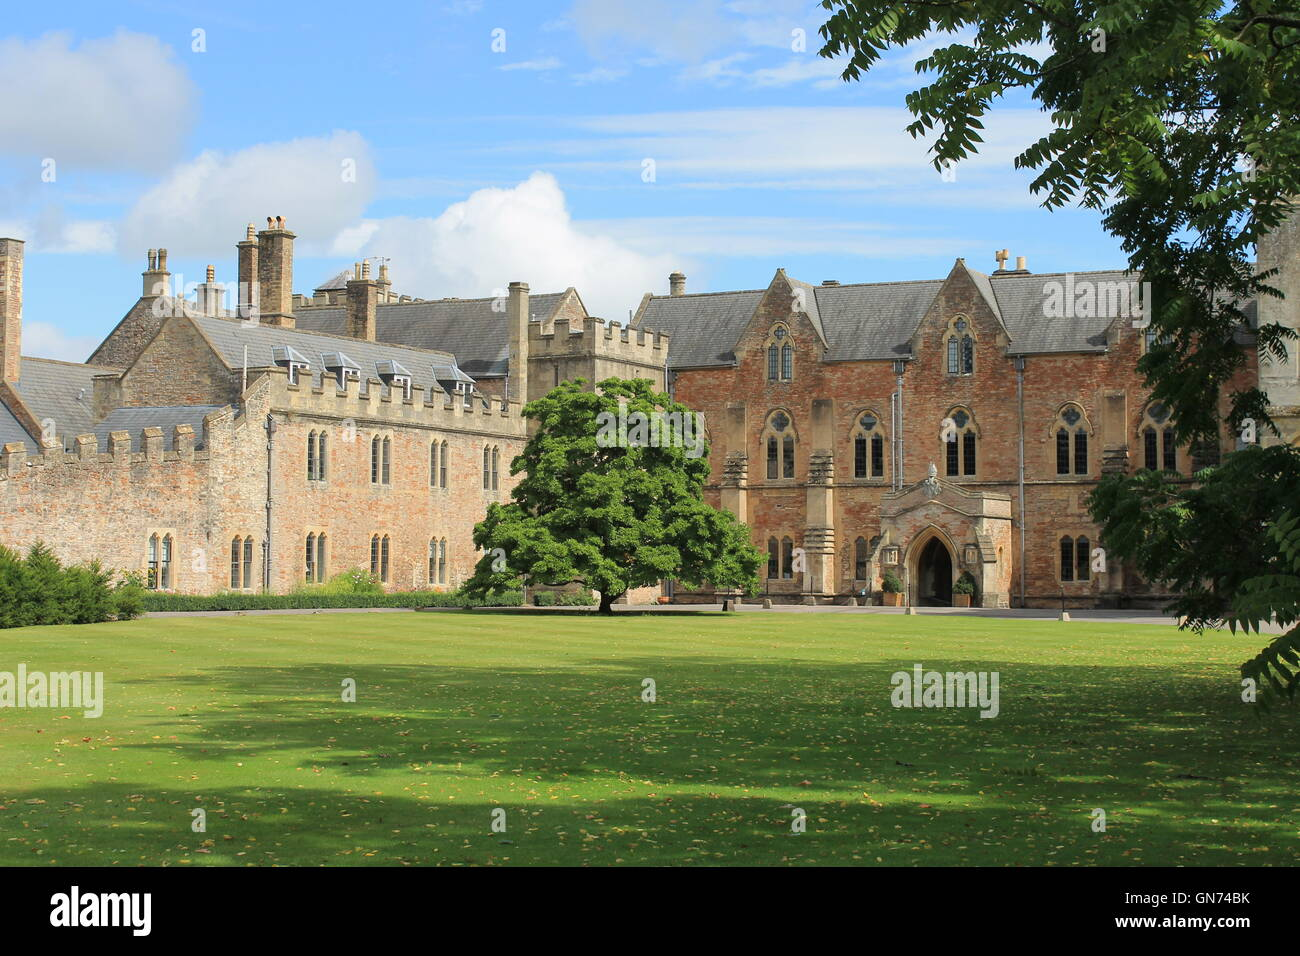 The Bishop's Palace and front lawn, Wells, Somerset, England, UK - Stock Image